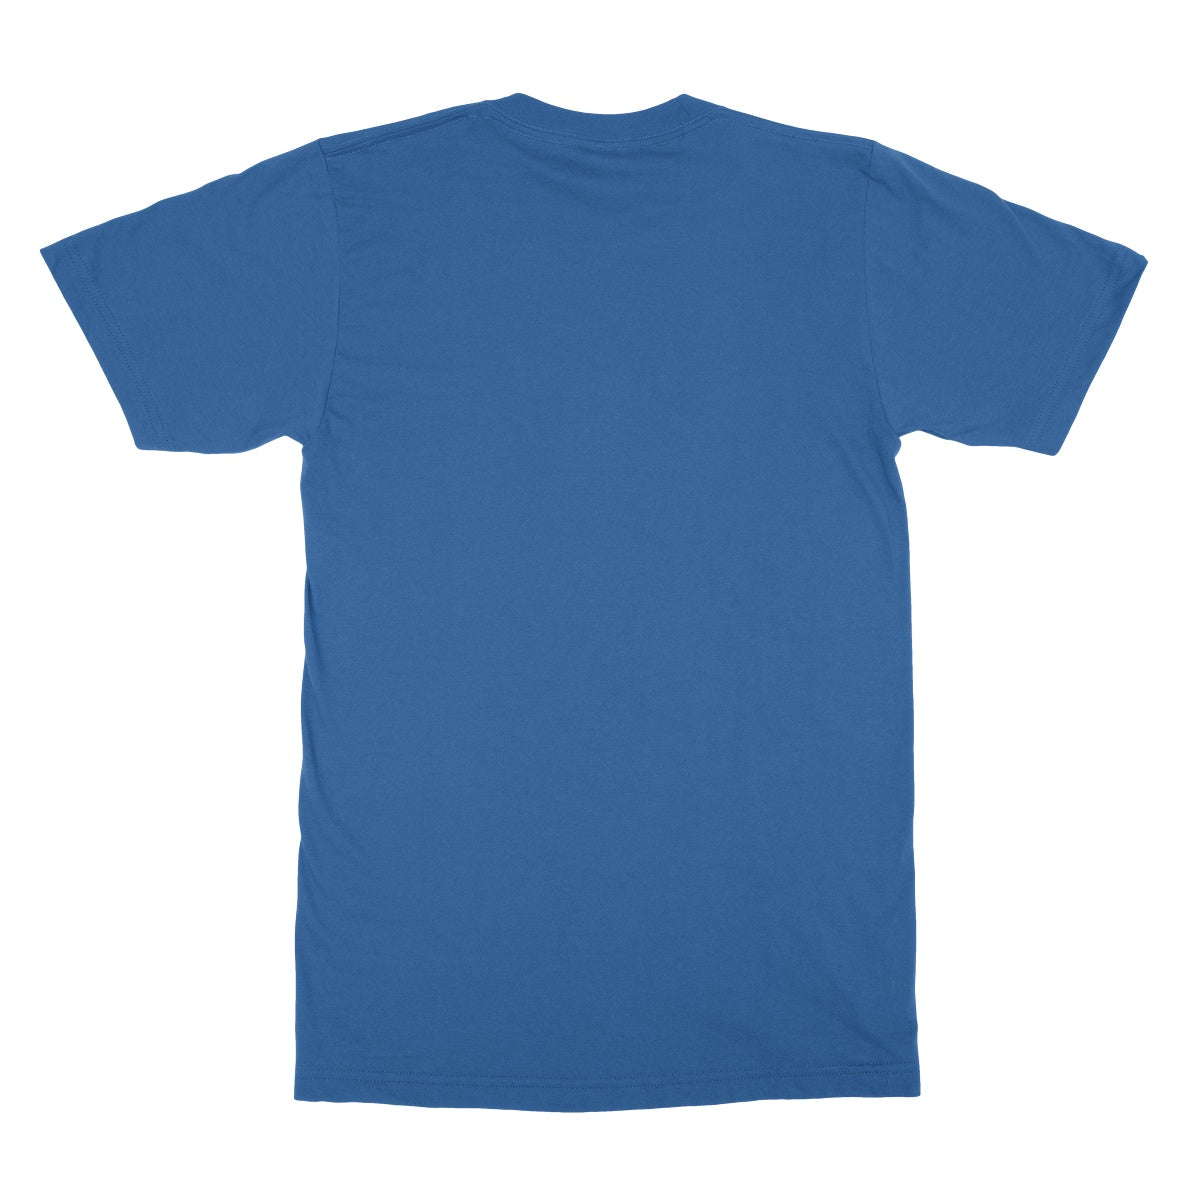 Femme Bleue 'Rêver' Softstyle T-Shirt